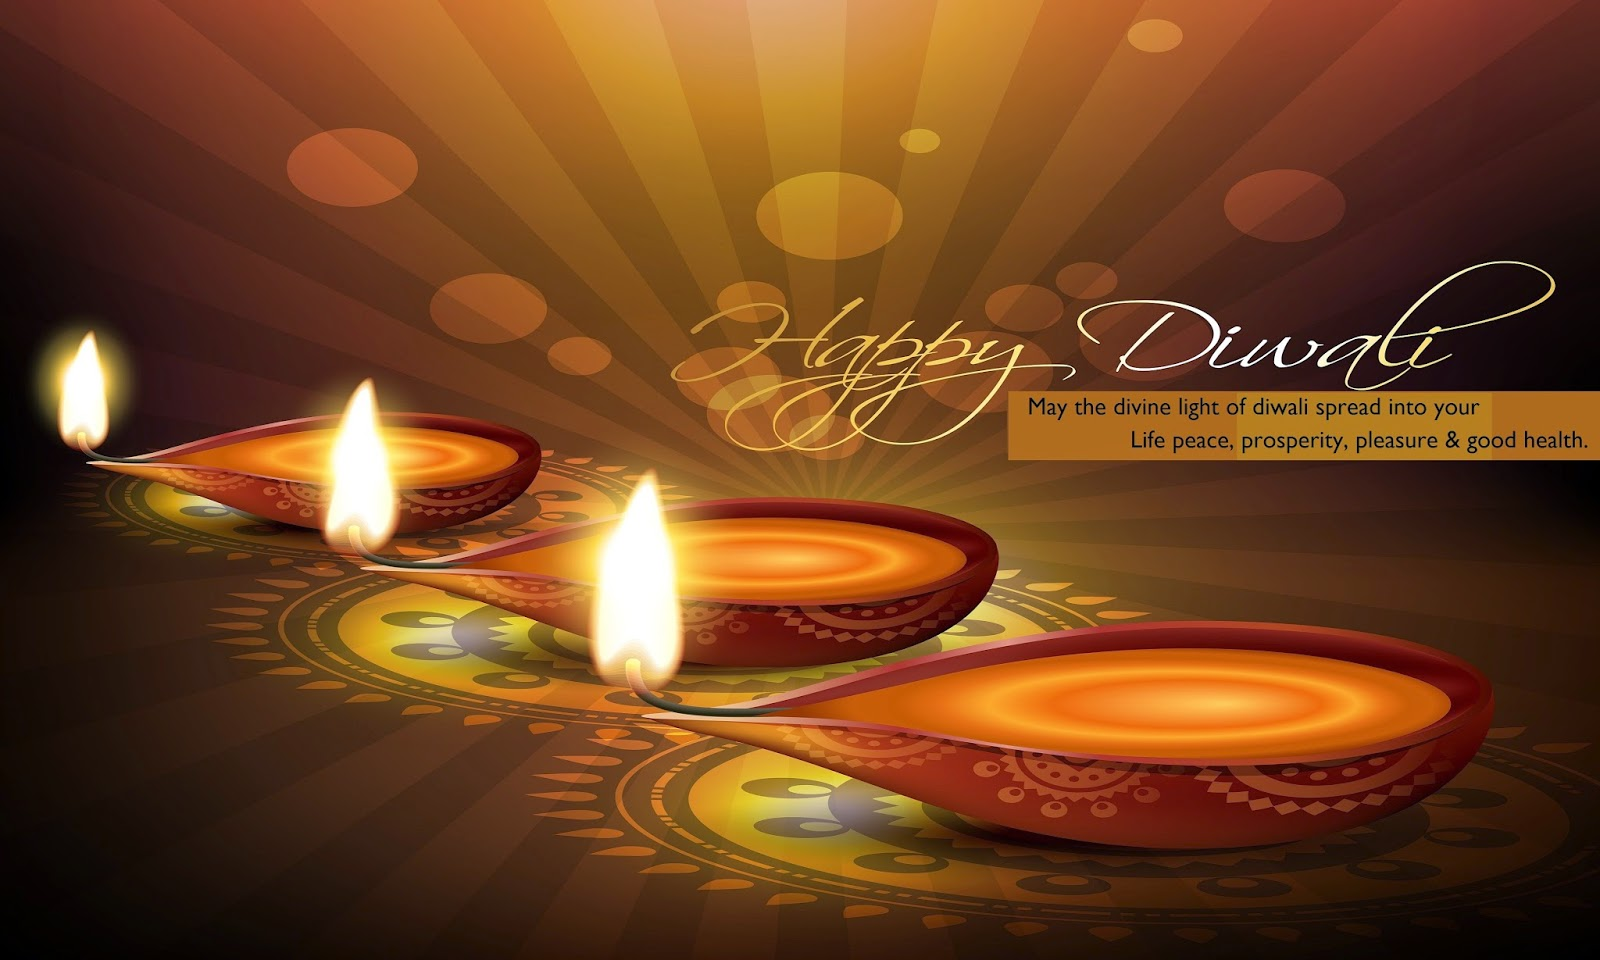 Happy Diwali Wallpapers And Backgrounds: Happy Diwali 2014 Greeting And Wishes HD Wallpapers Free